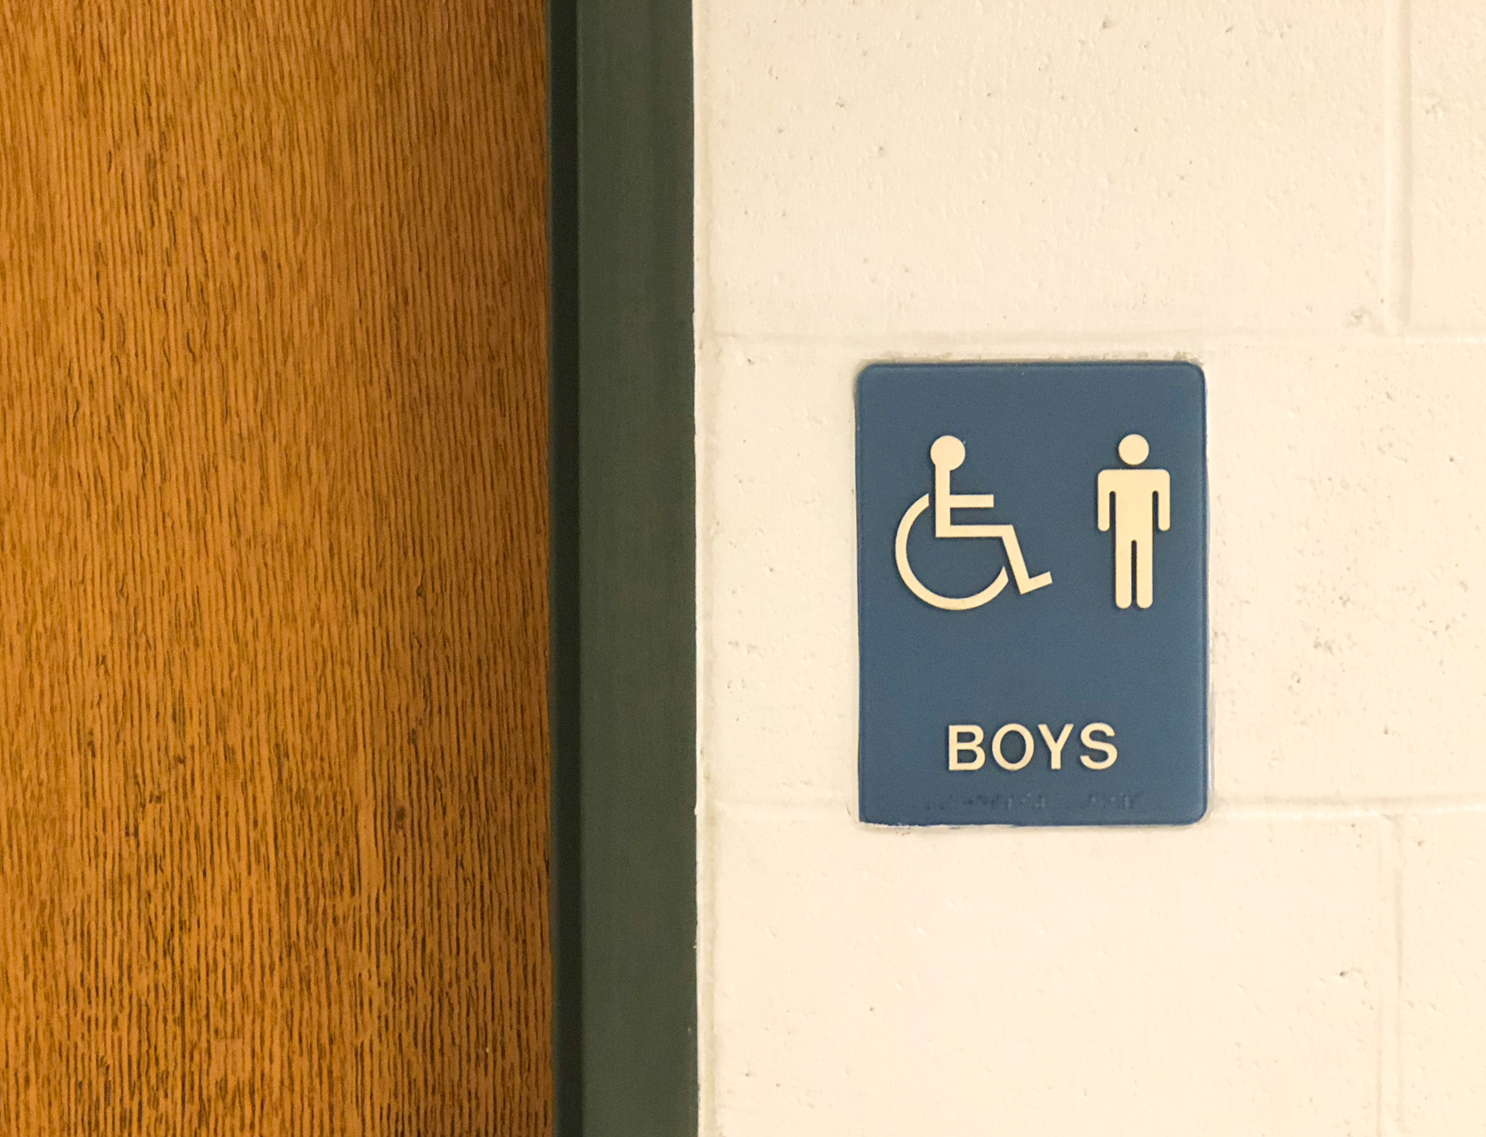 The debate over Question 3 has largely centered around use of public restrooms.